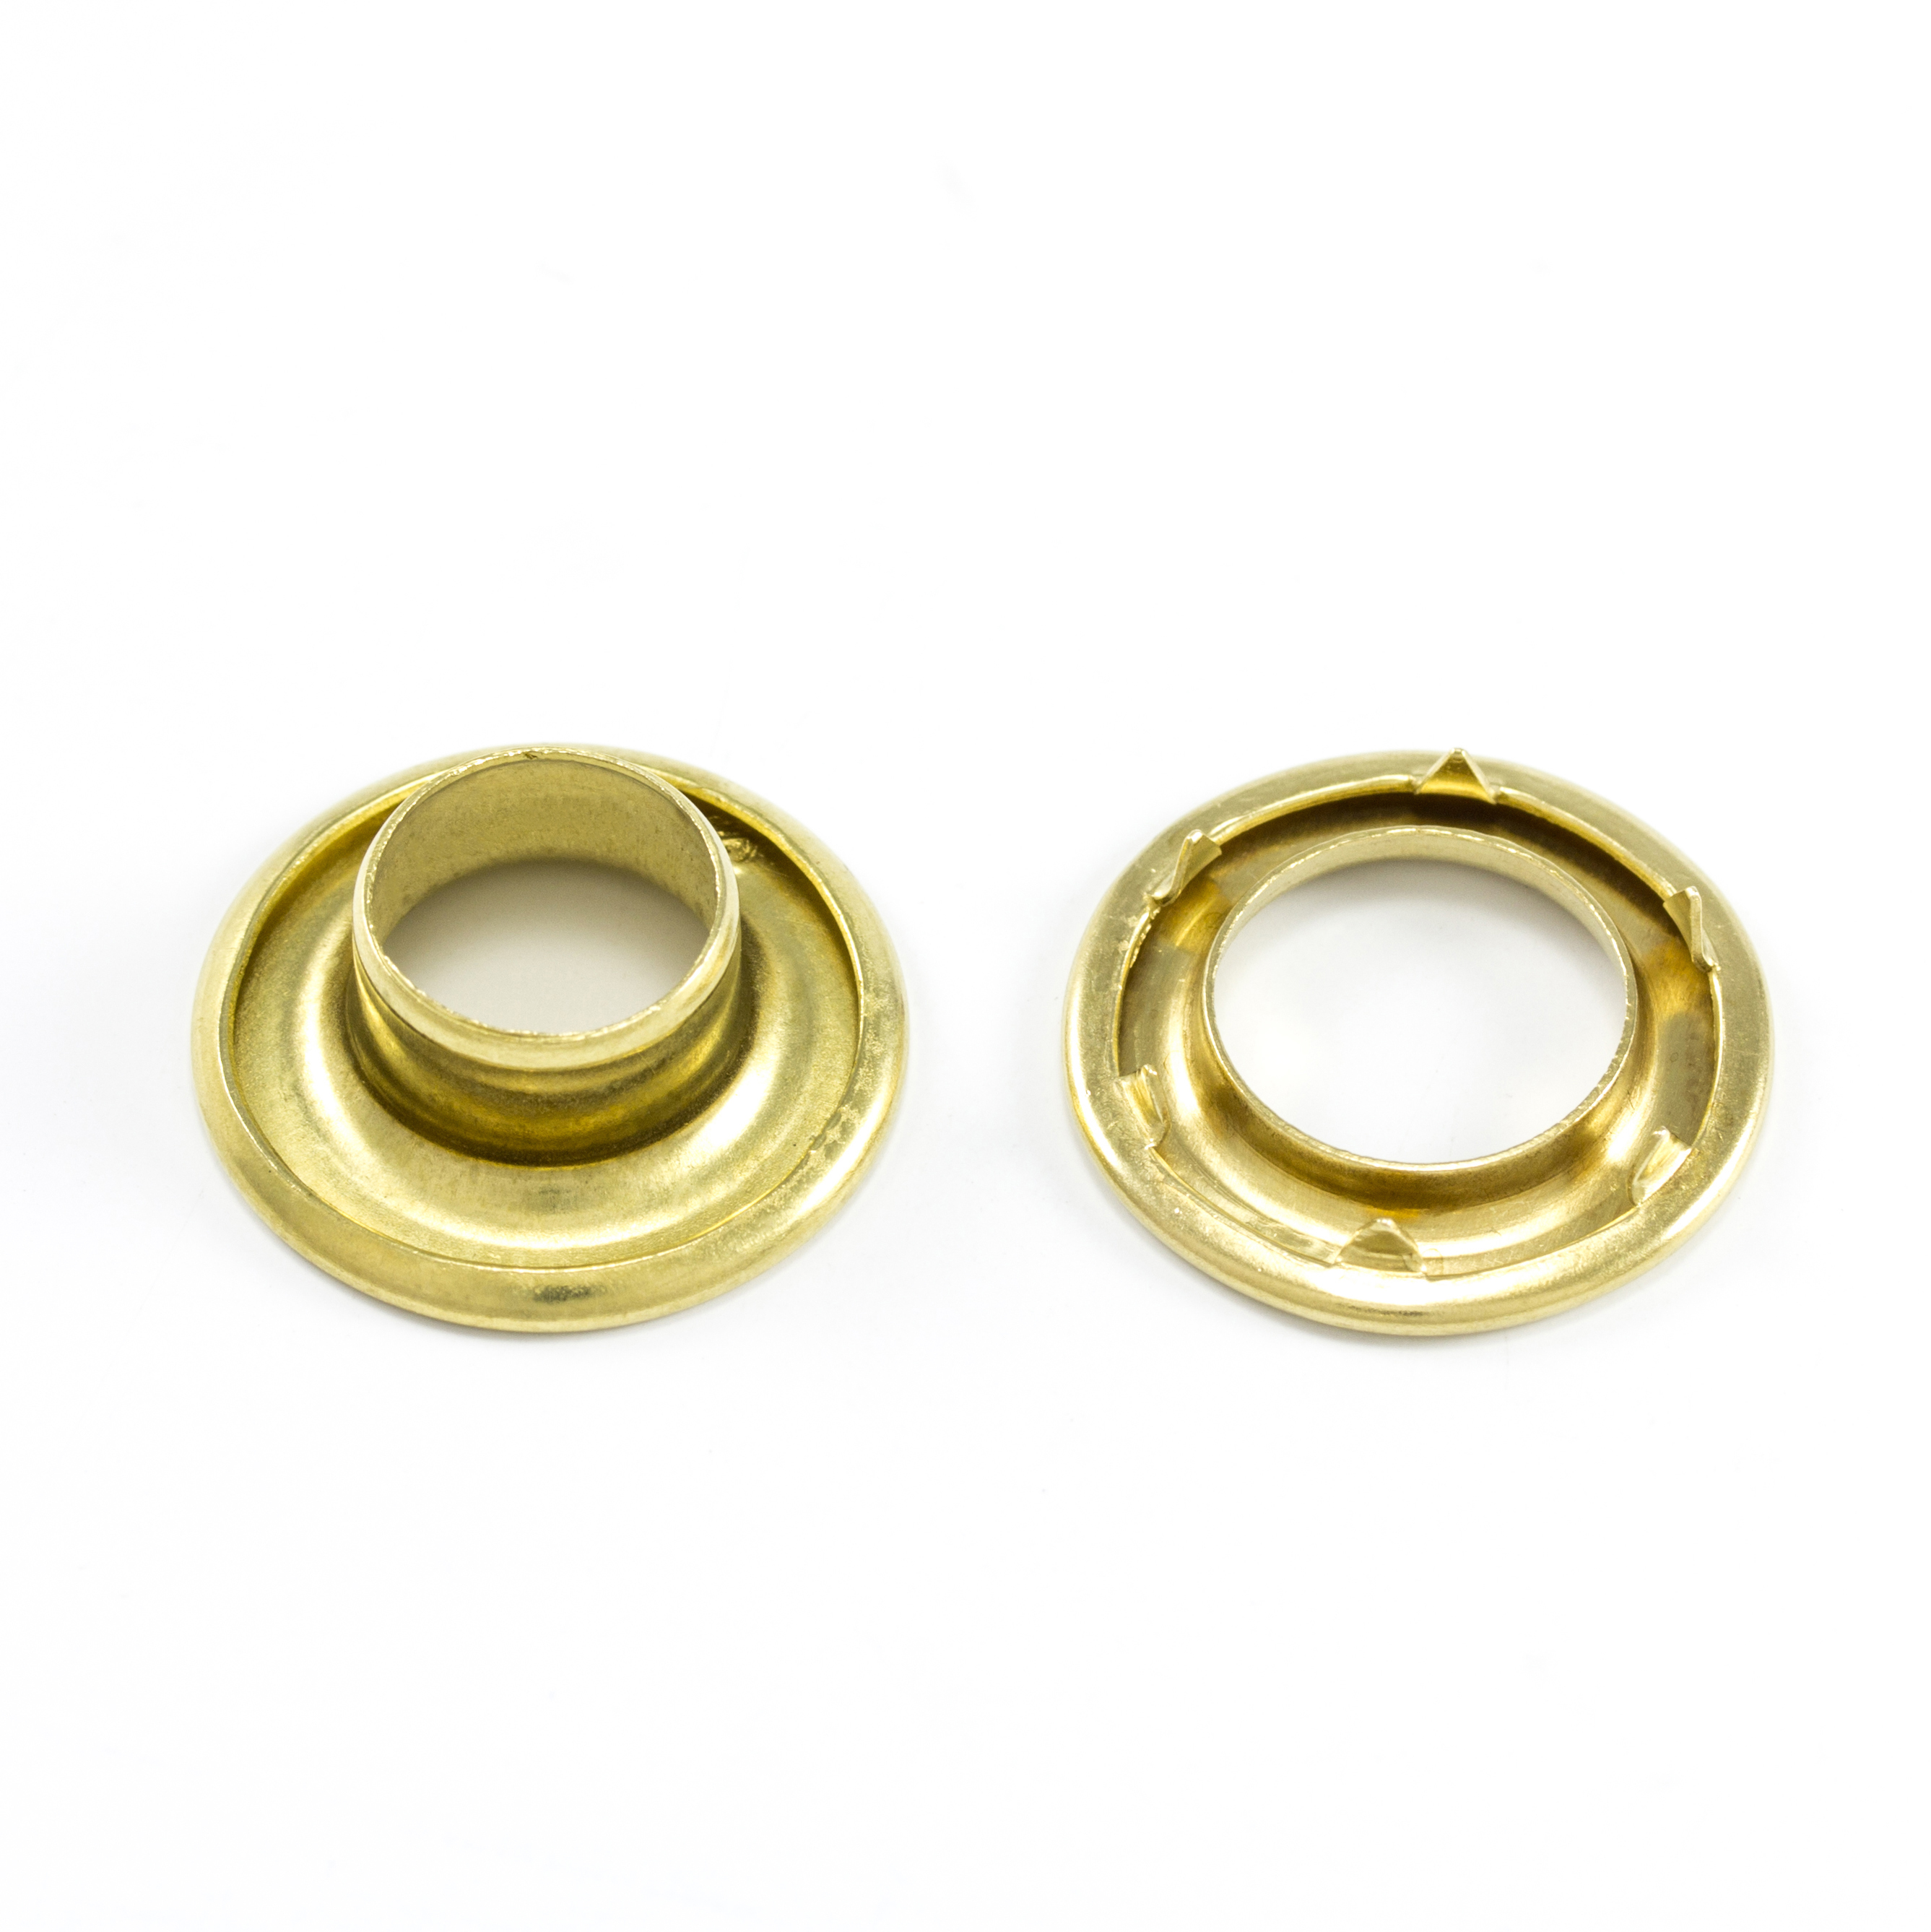 DOT Rolled Rim Grommet with Spur Washer #2 Brass 7/16